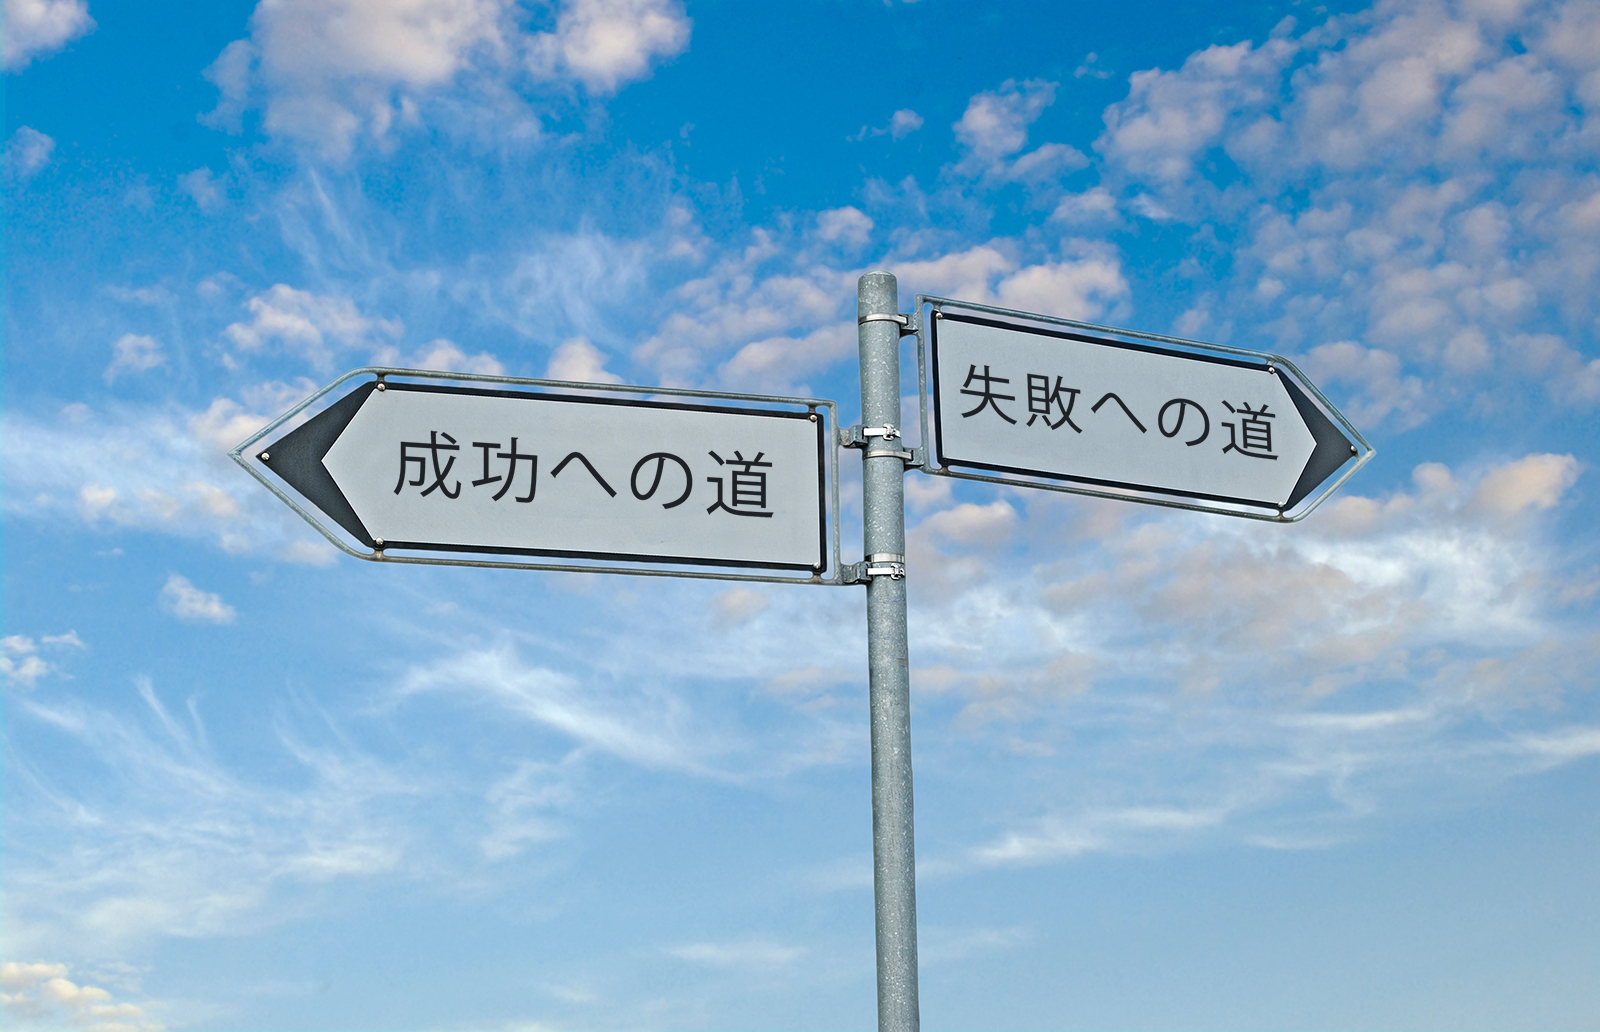 road sign language difference japan china america medical market